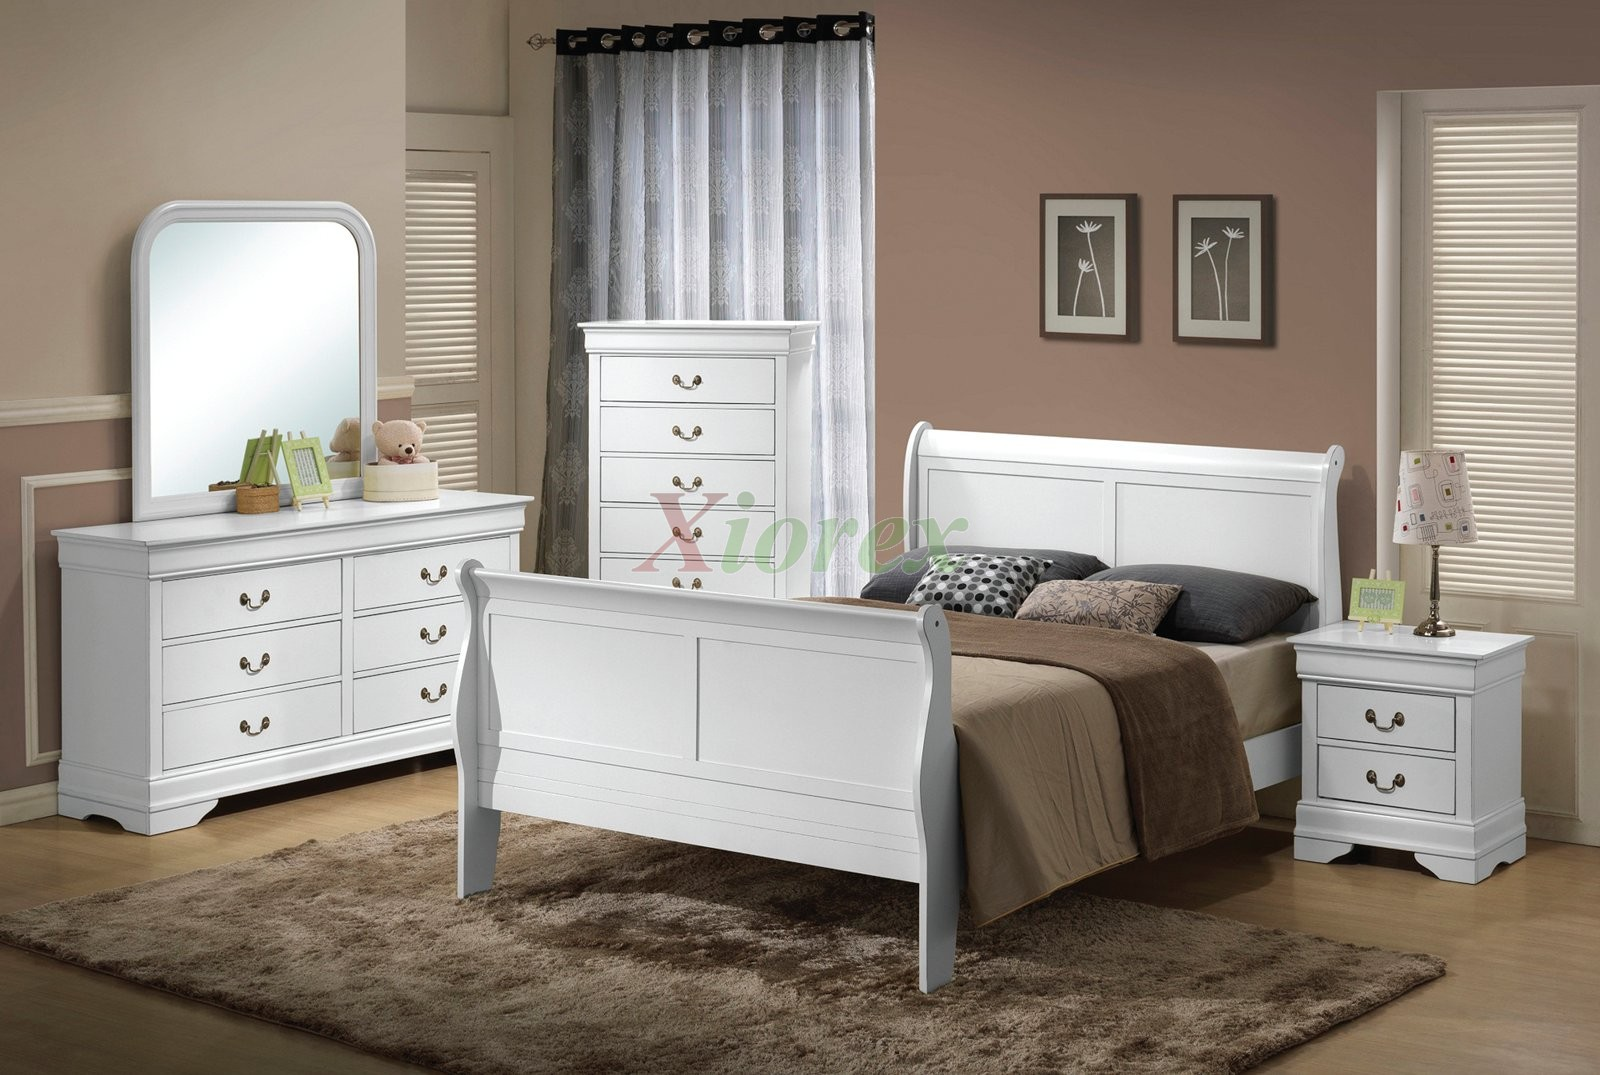 Semi gloss sleigh like bedroom furniture set 170 in cherry for White bed set furniture